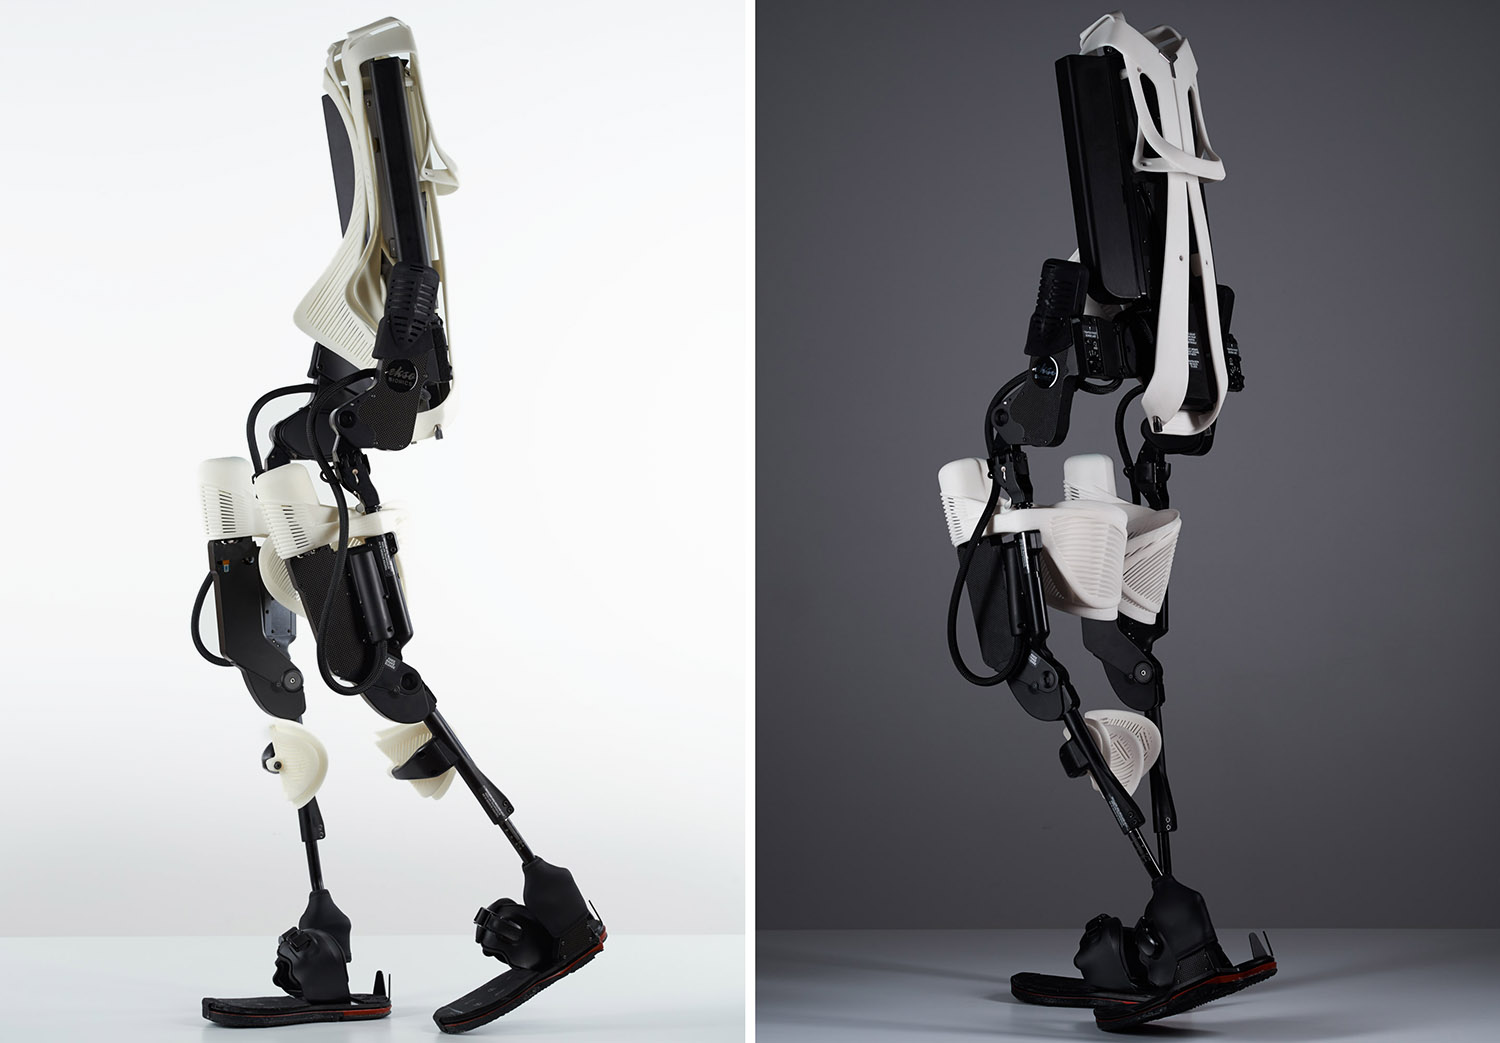 Scott Summit of 3D Systems teams up with Eckso Bionics.